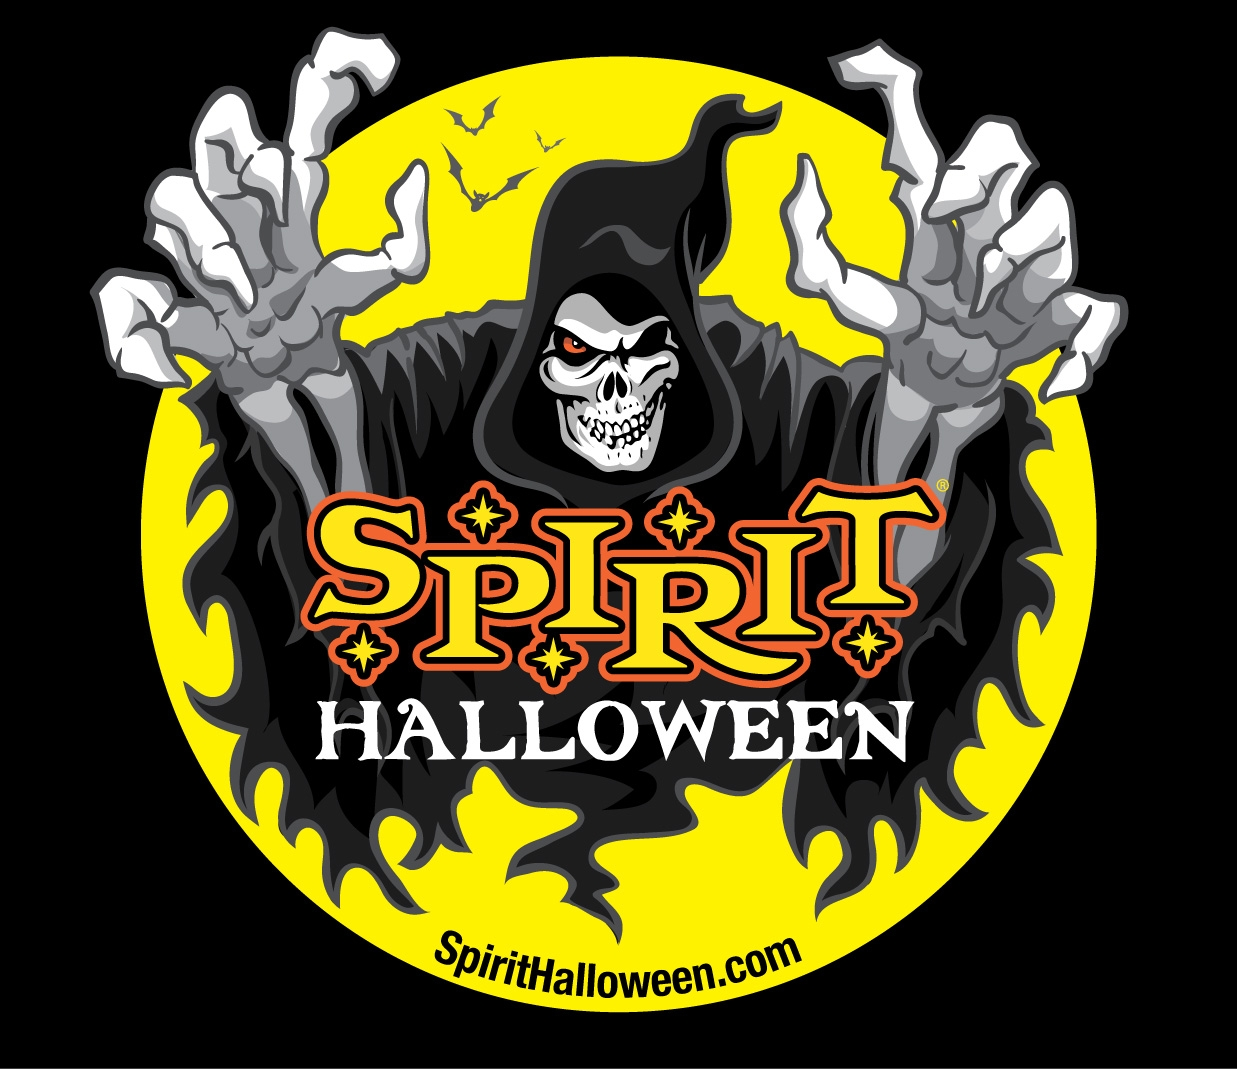 Spirit Halloween Stores Now Open! You must agree to receive emails from Spirit Halloween Superstores LLC.